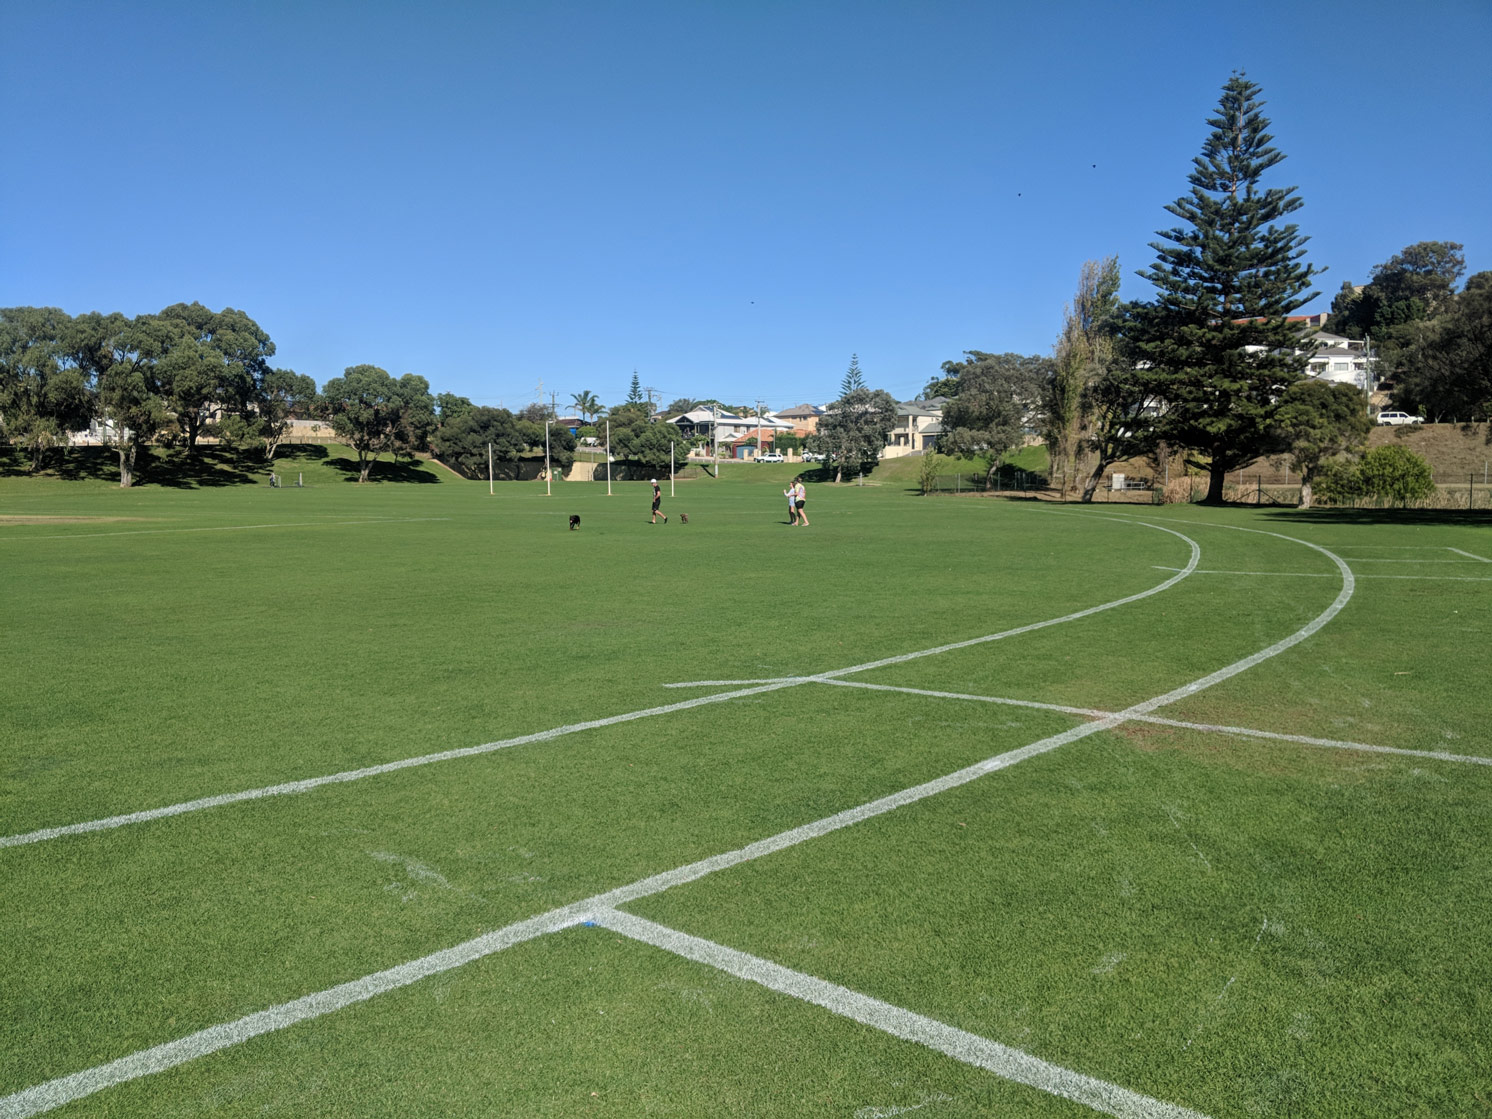 AFL spectator line and interchange zone in white line marking paint